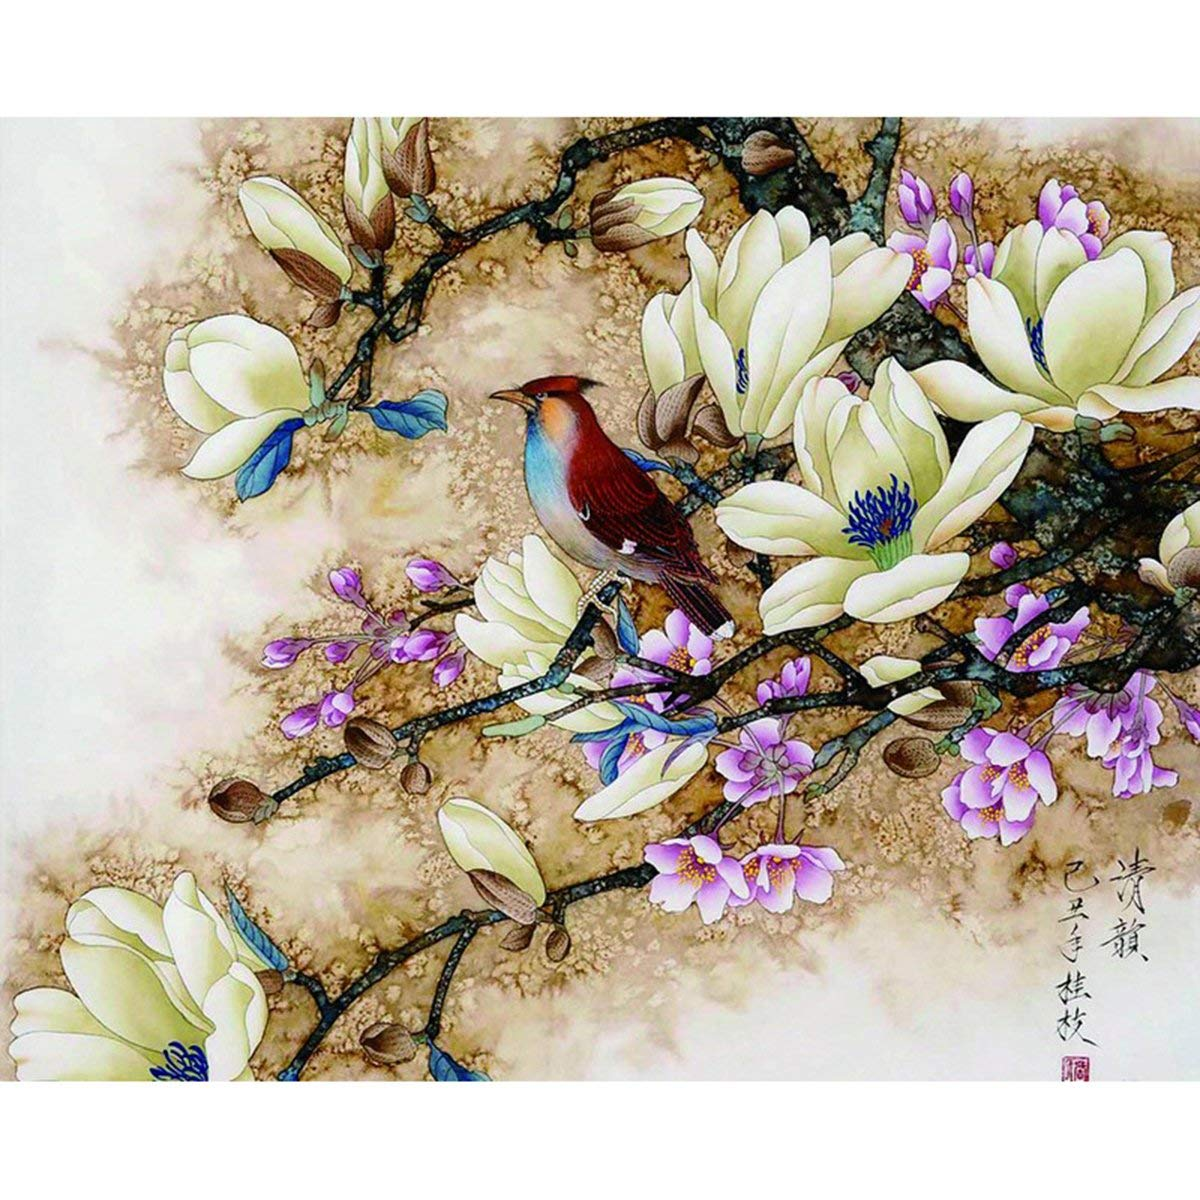 Shukqueen Diy Oil Painting, Adult's Paint by Number Kits, Acrylic Painting-Chinese Flowers and Birds Painting 16X20 Inch (Frameless)